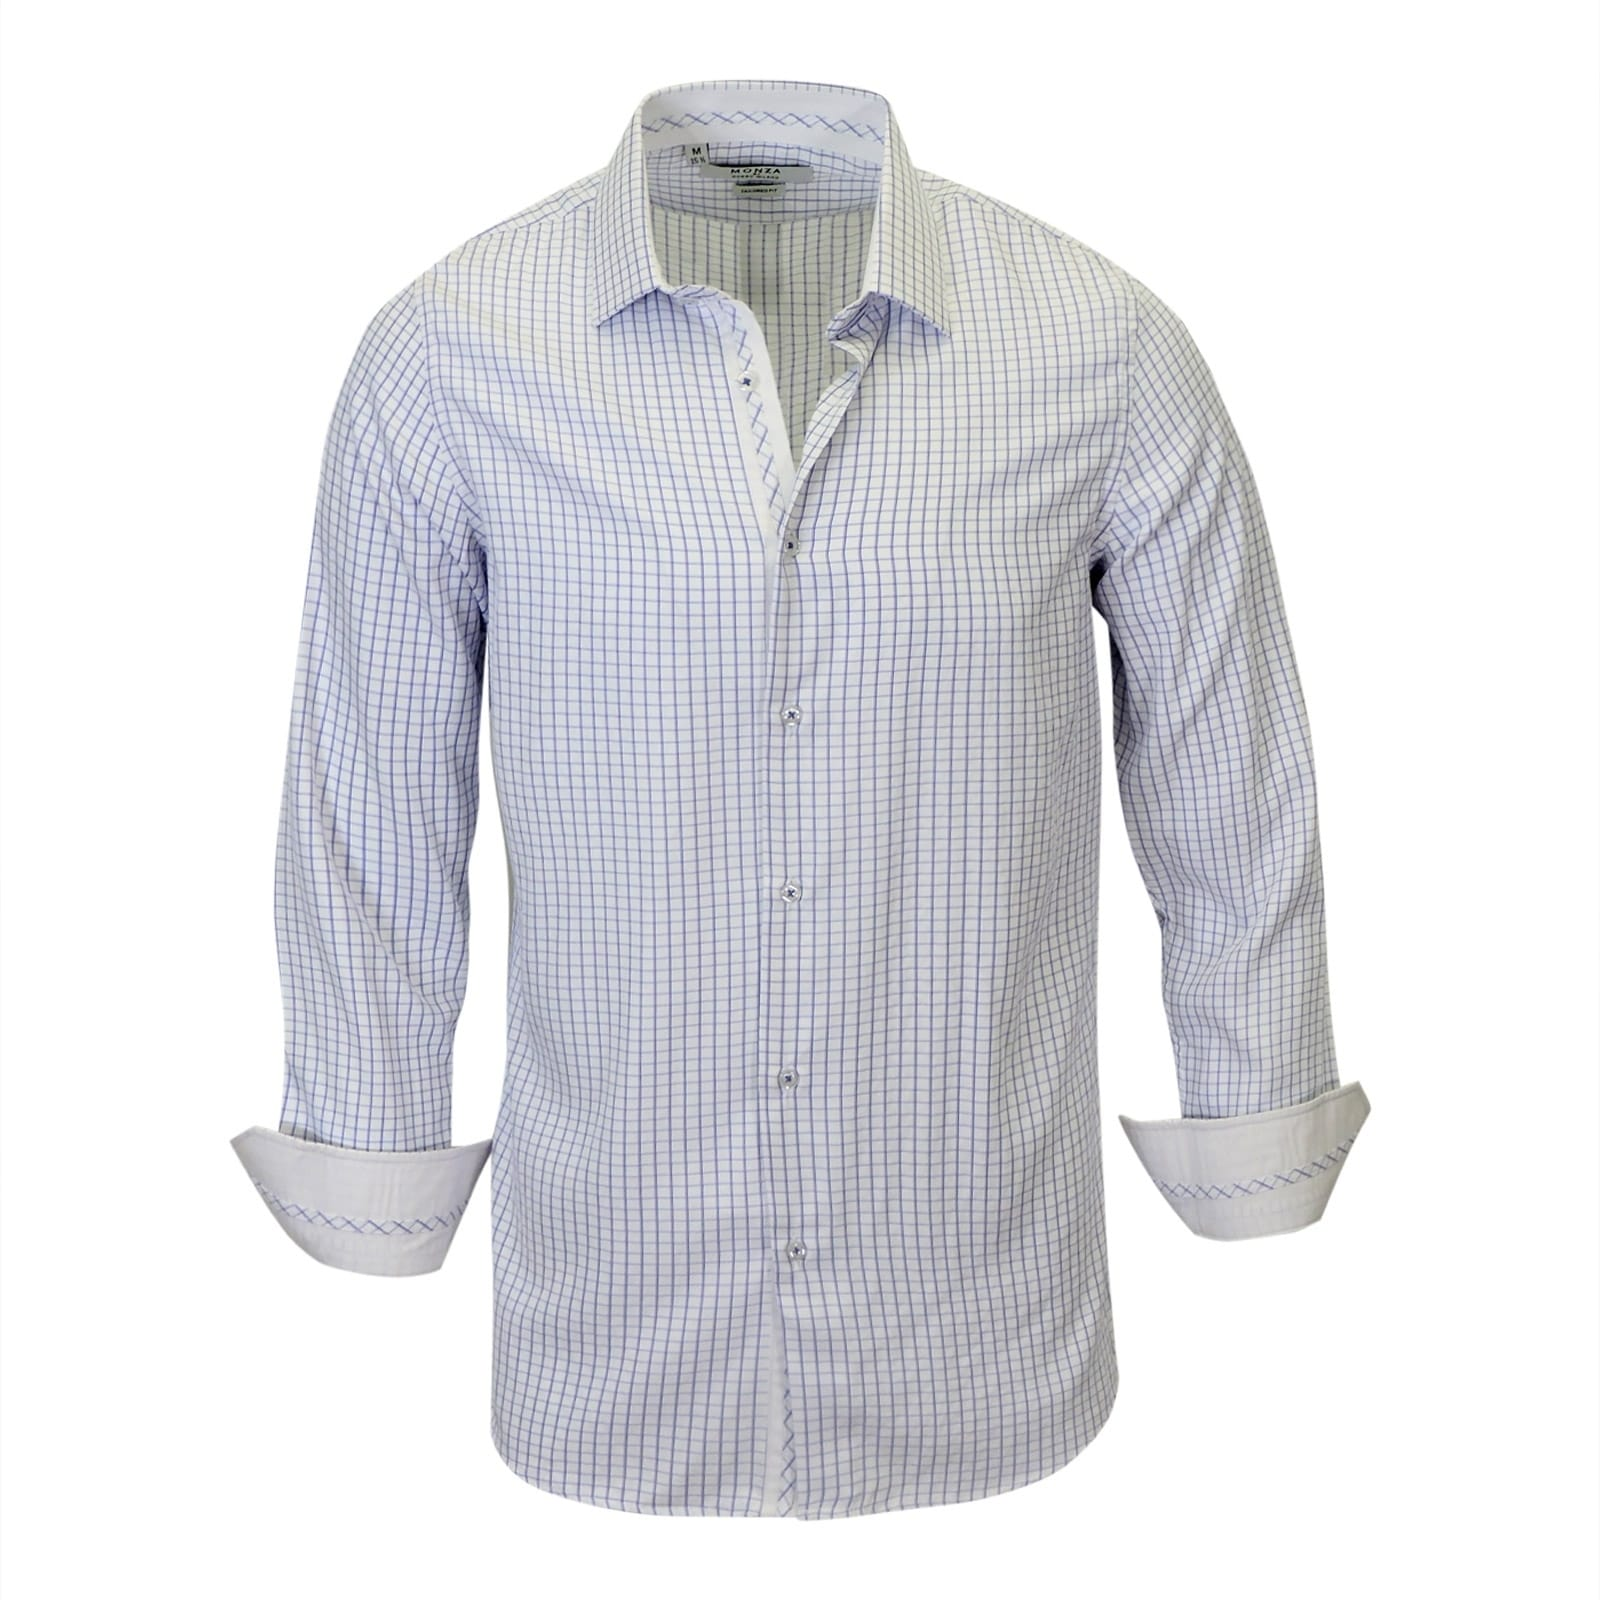 Shop Stylish Mens Dress Shirt From Monza Free Shipping On Orders